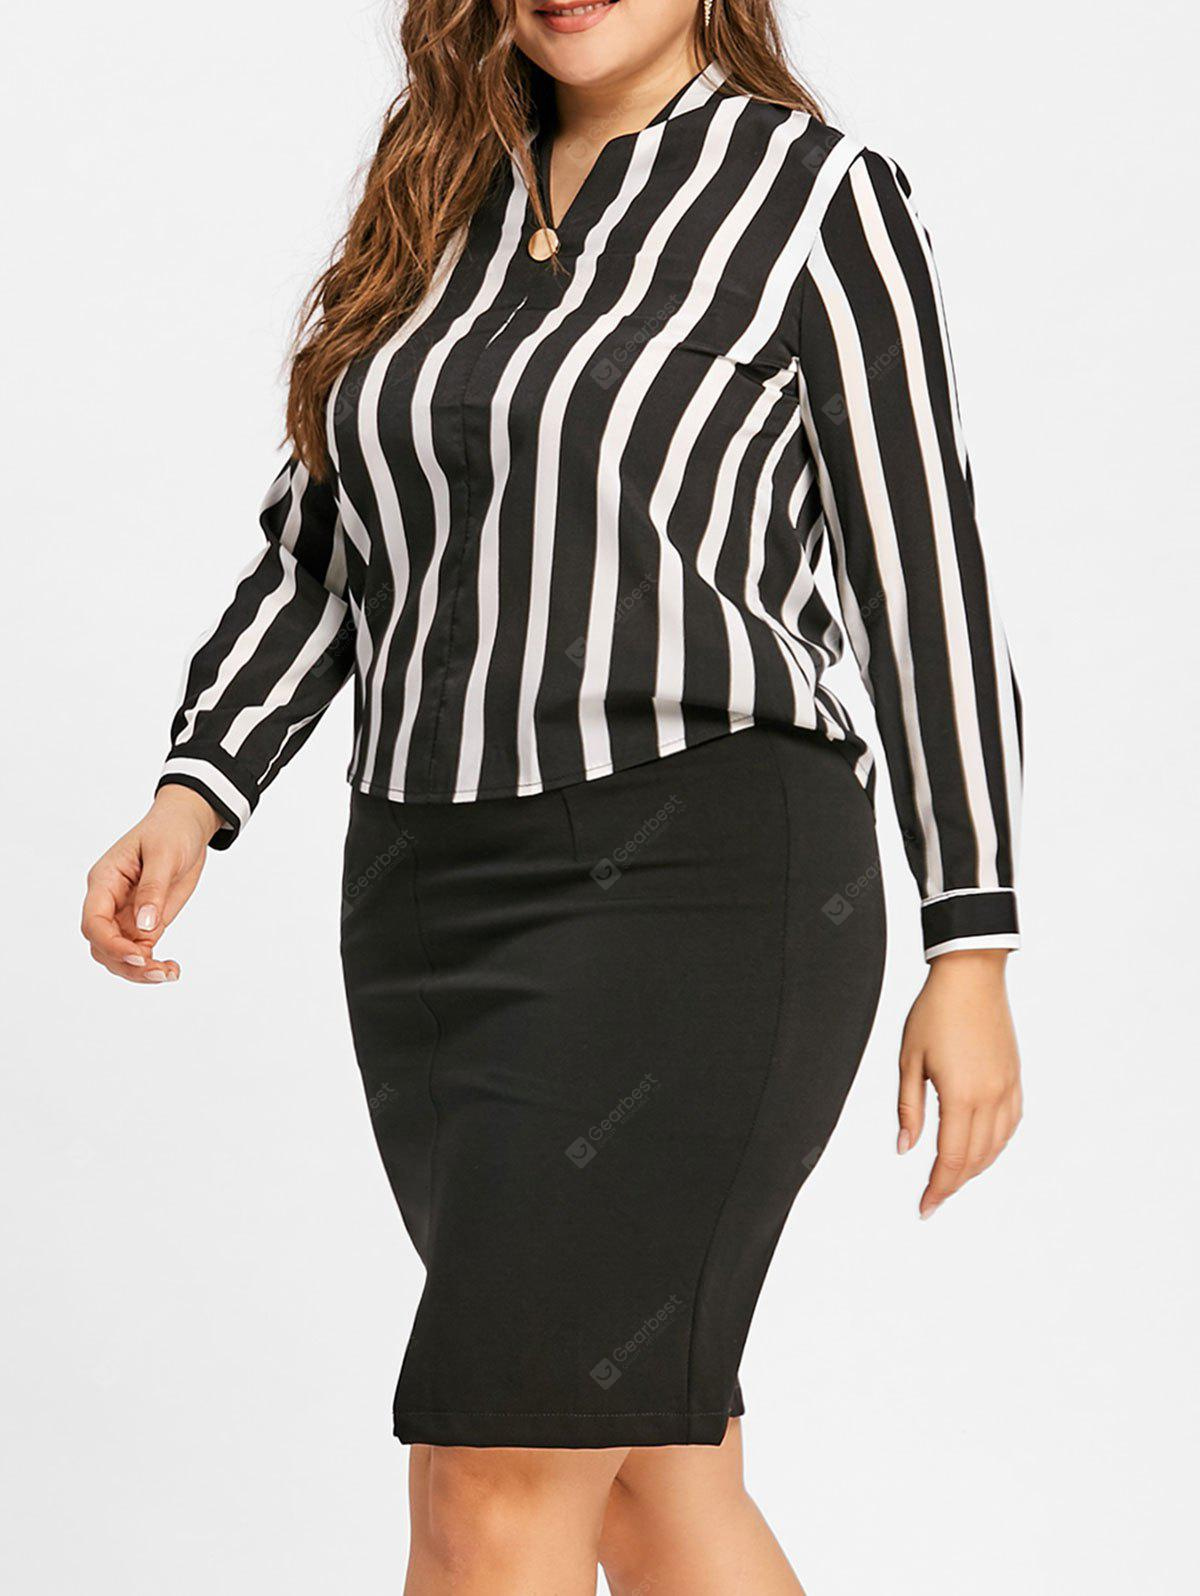 c143582fff6 Striped High Low V Neck Plus Size Blouse -  21.31 Free Shipping ...